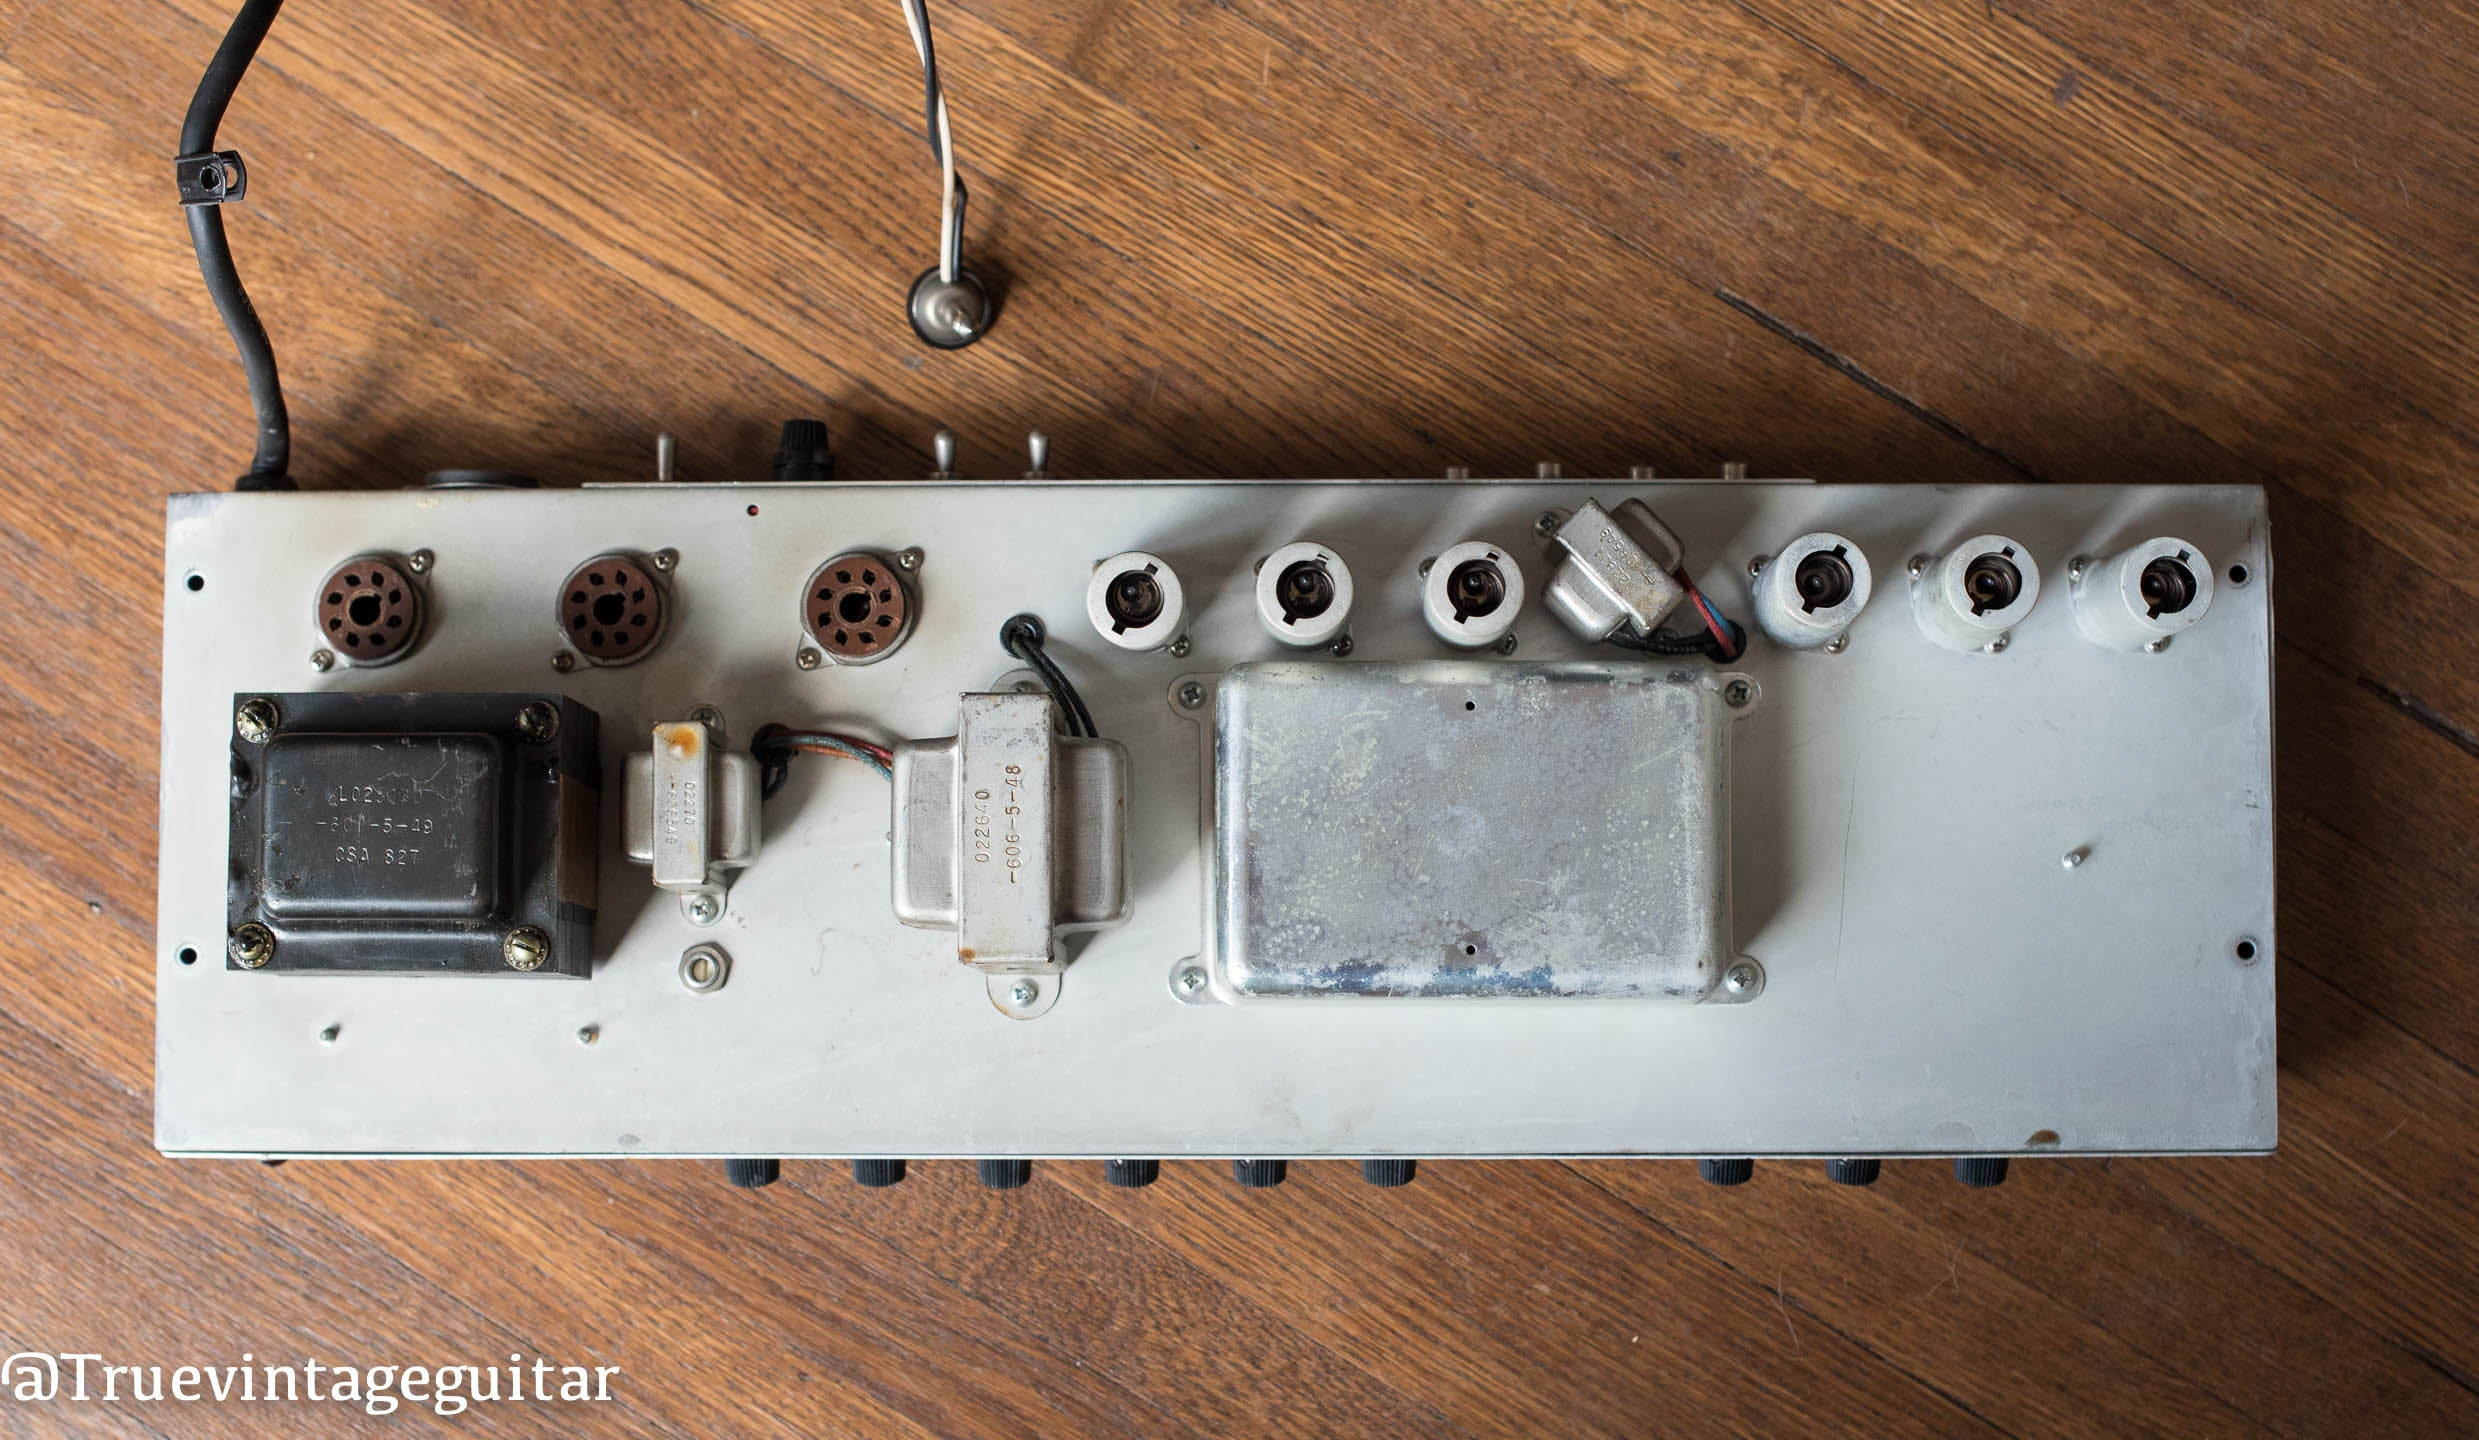 1976 Fender Deluxe Reverb output transformer, power transformer